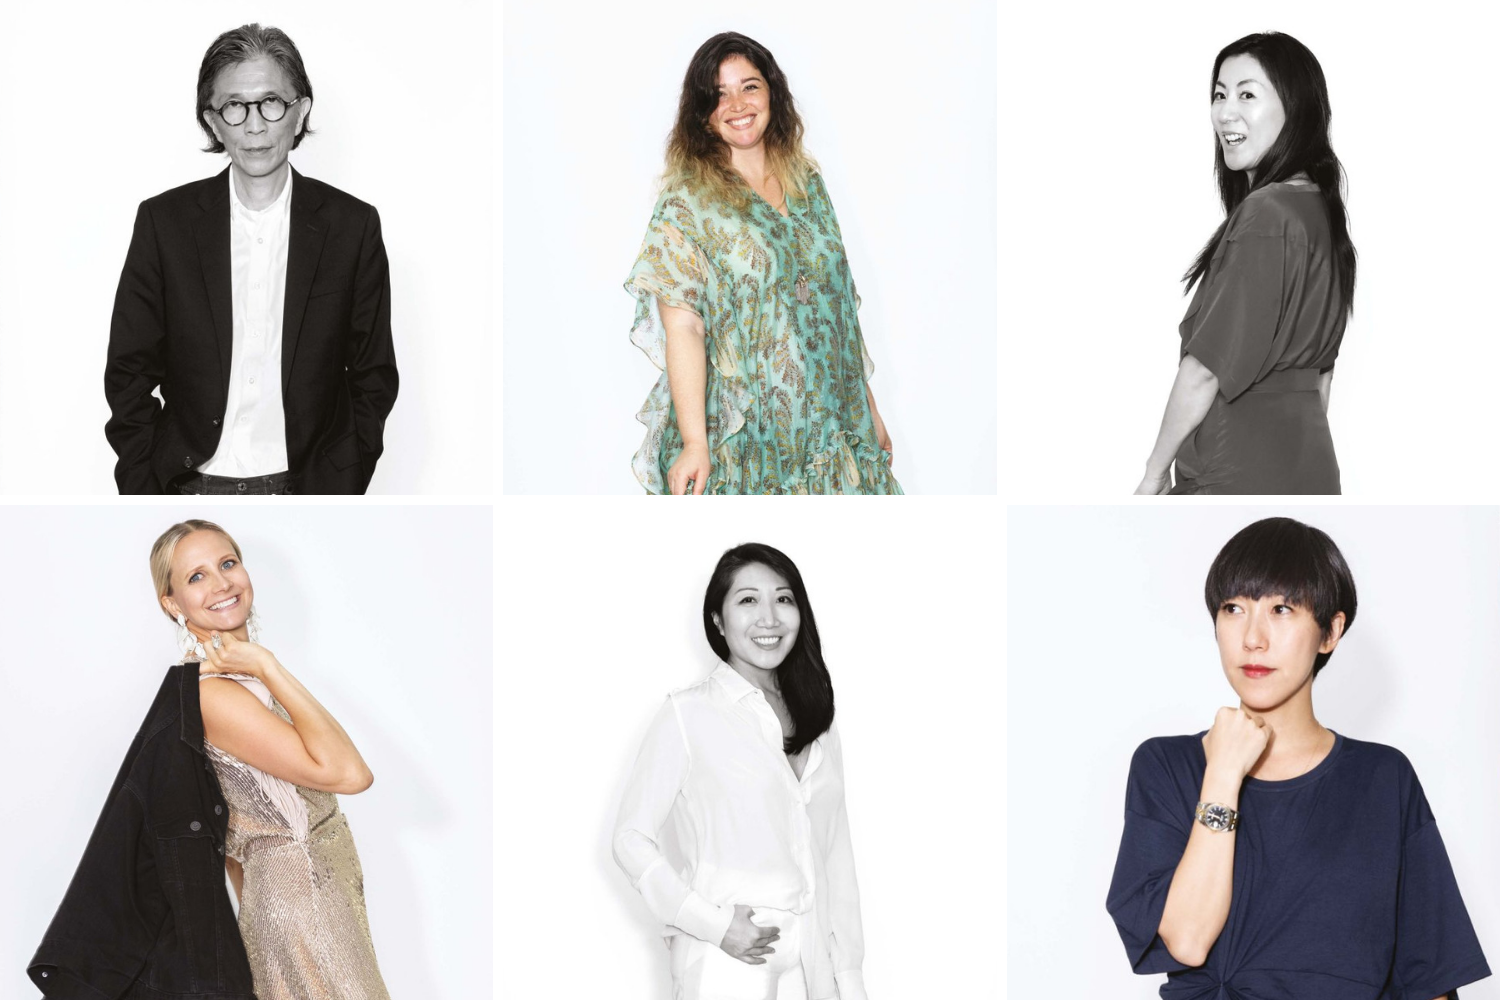 Sustainability Roundtable: 6 Trailblazers On Fashion's Footprints